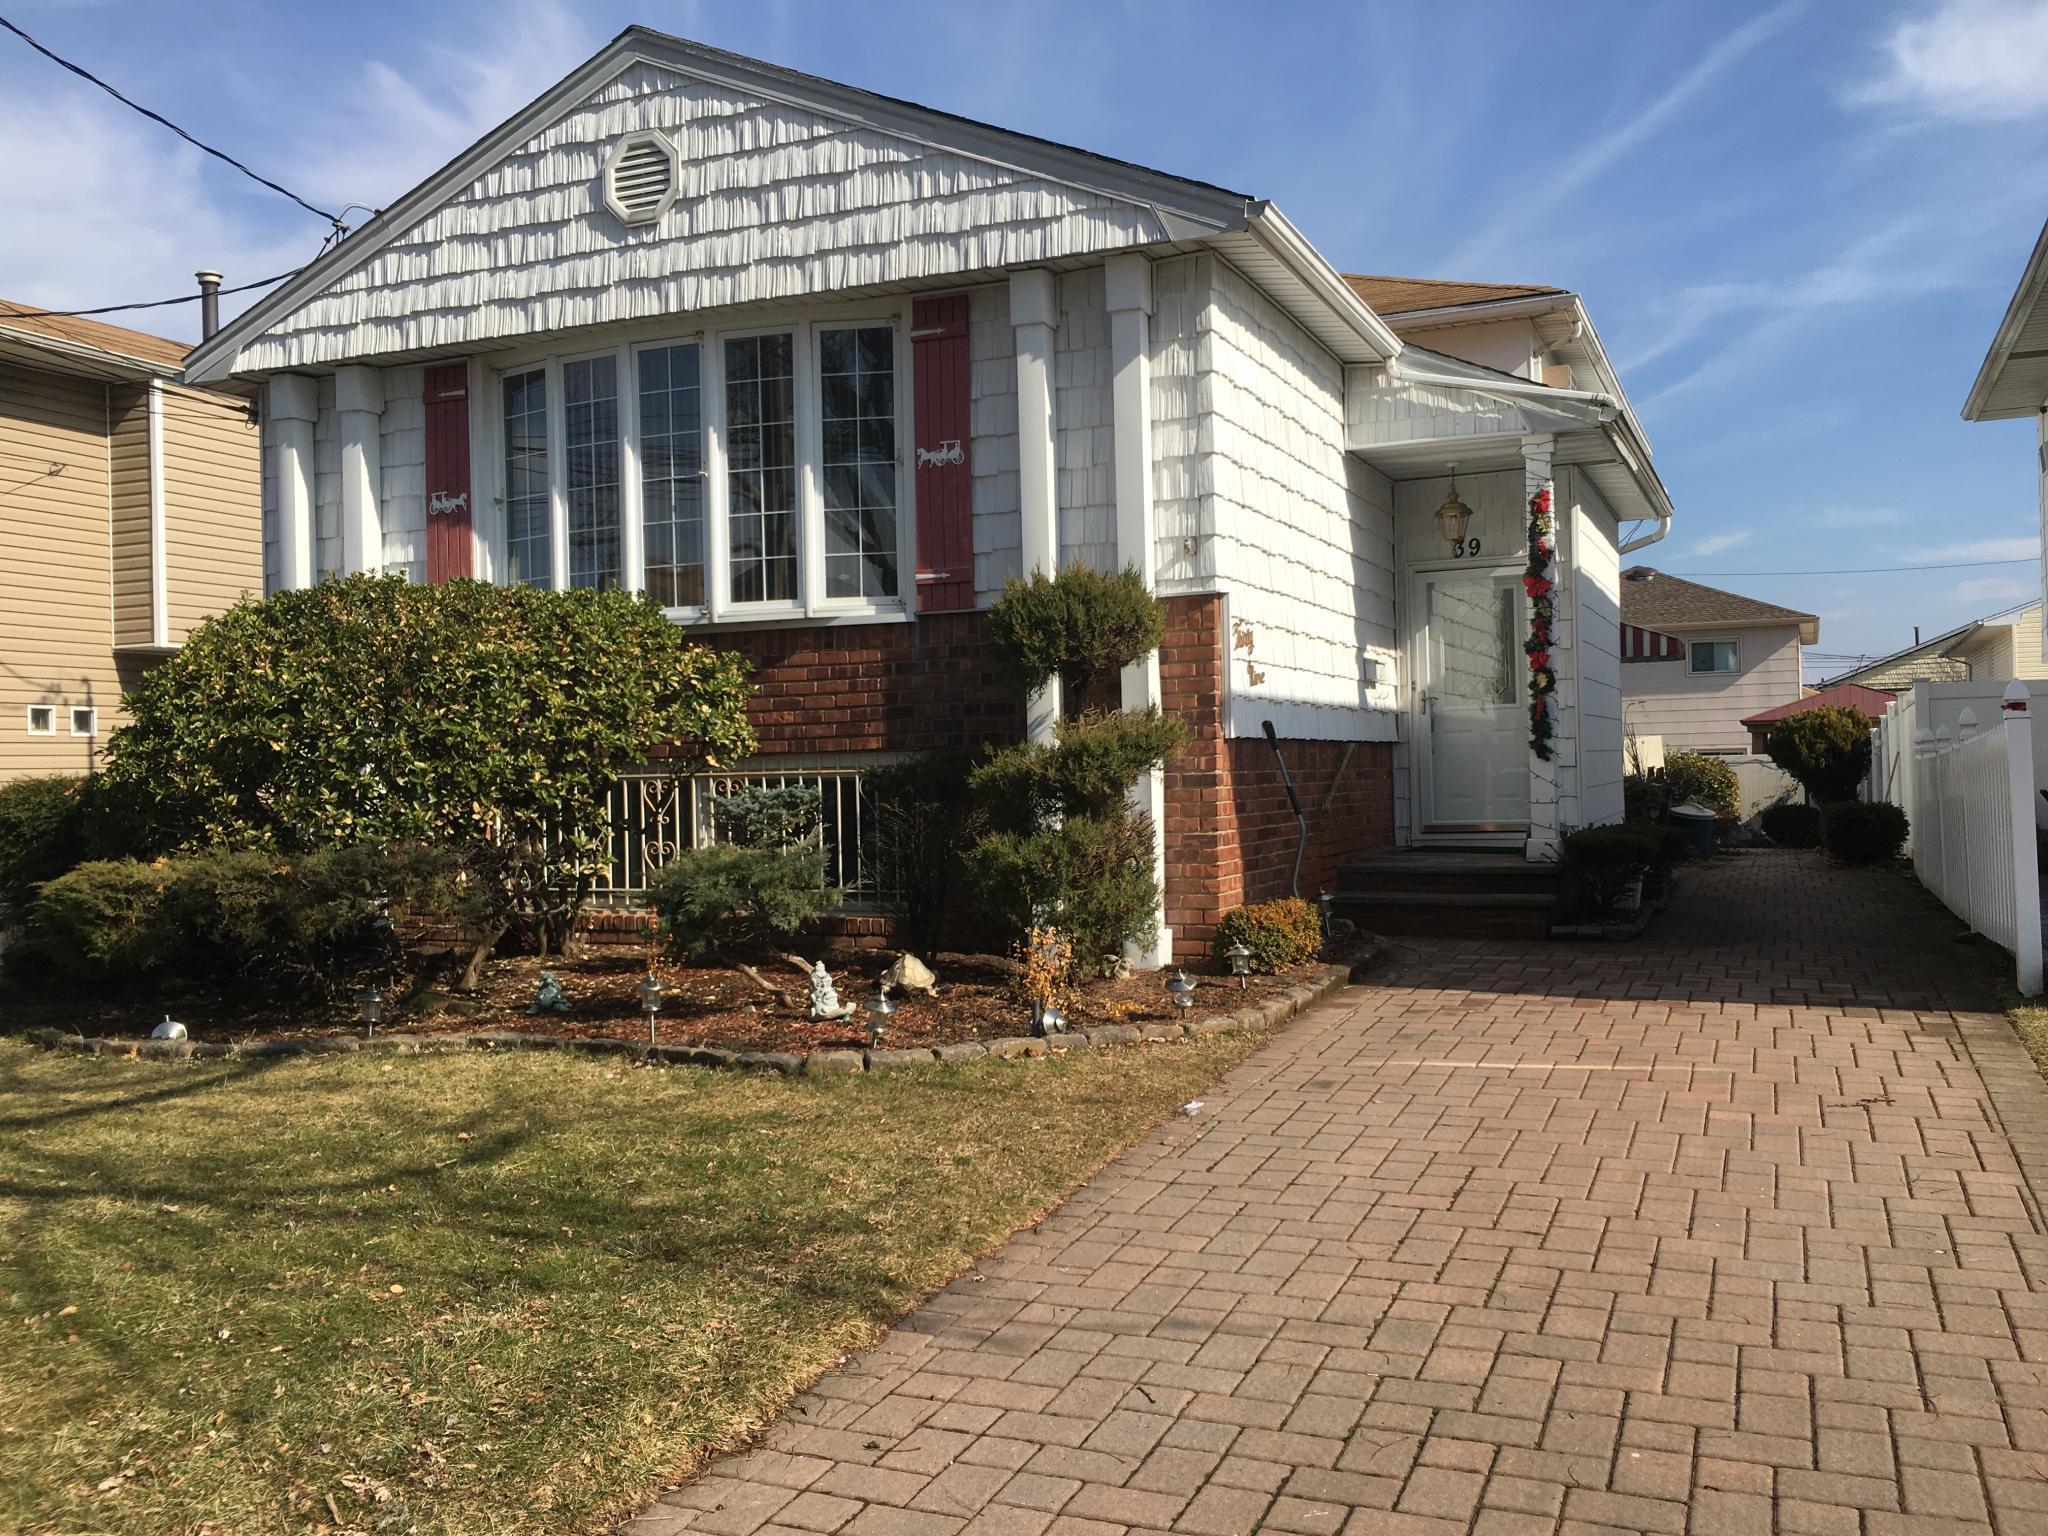 39 Oliver Pl #2, Staten Island, NY 10314 For Rent   Trulia